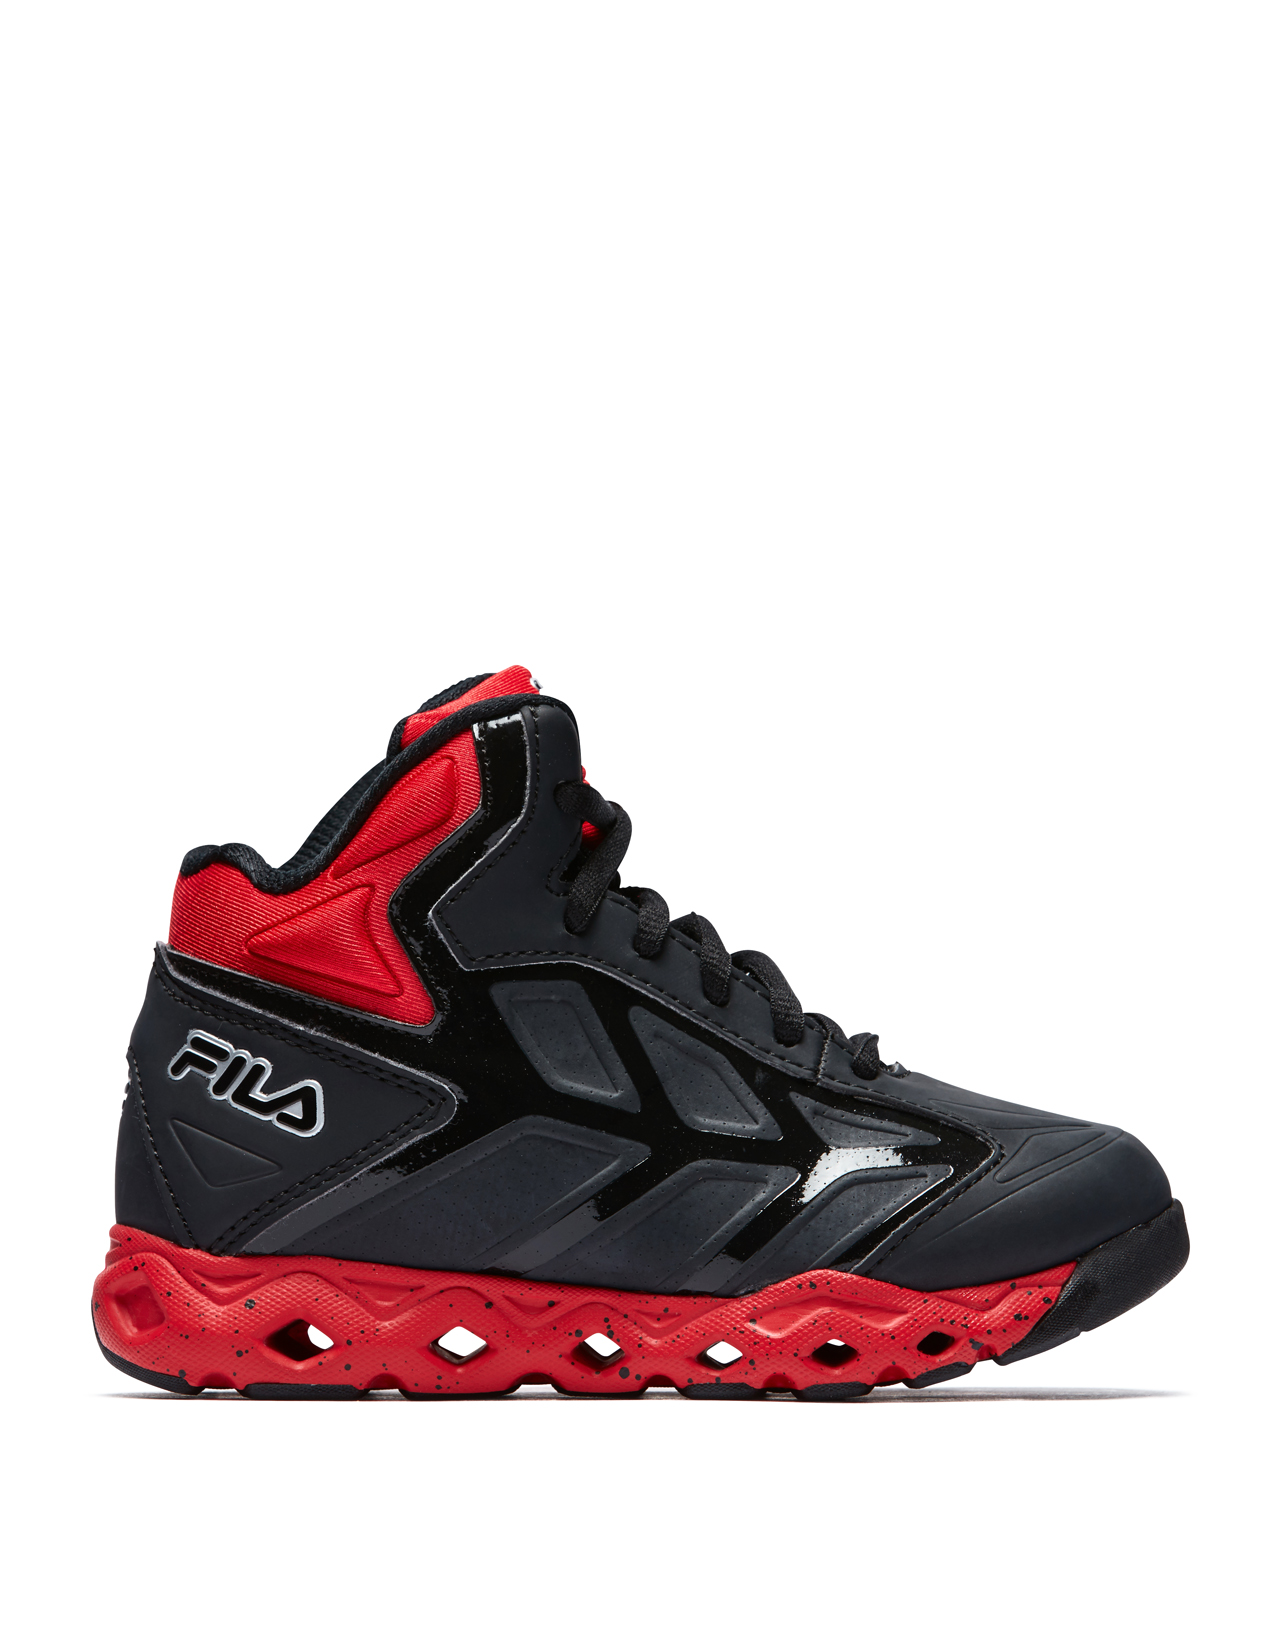 Fila TORRANADO Kids High Top Basketball Sneakers Shoes | eBay